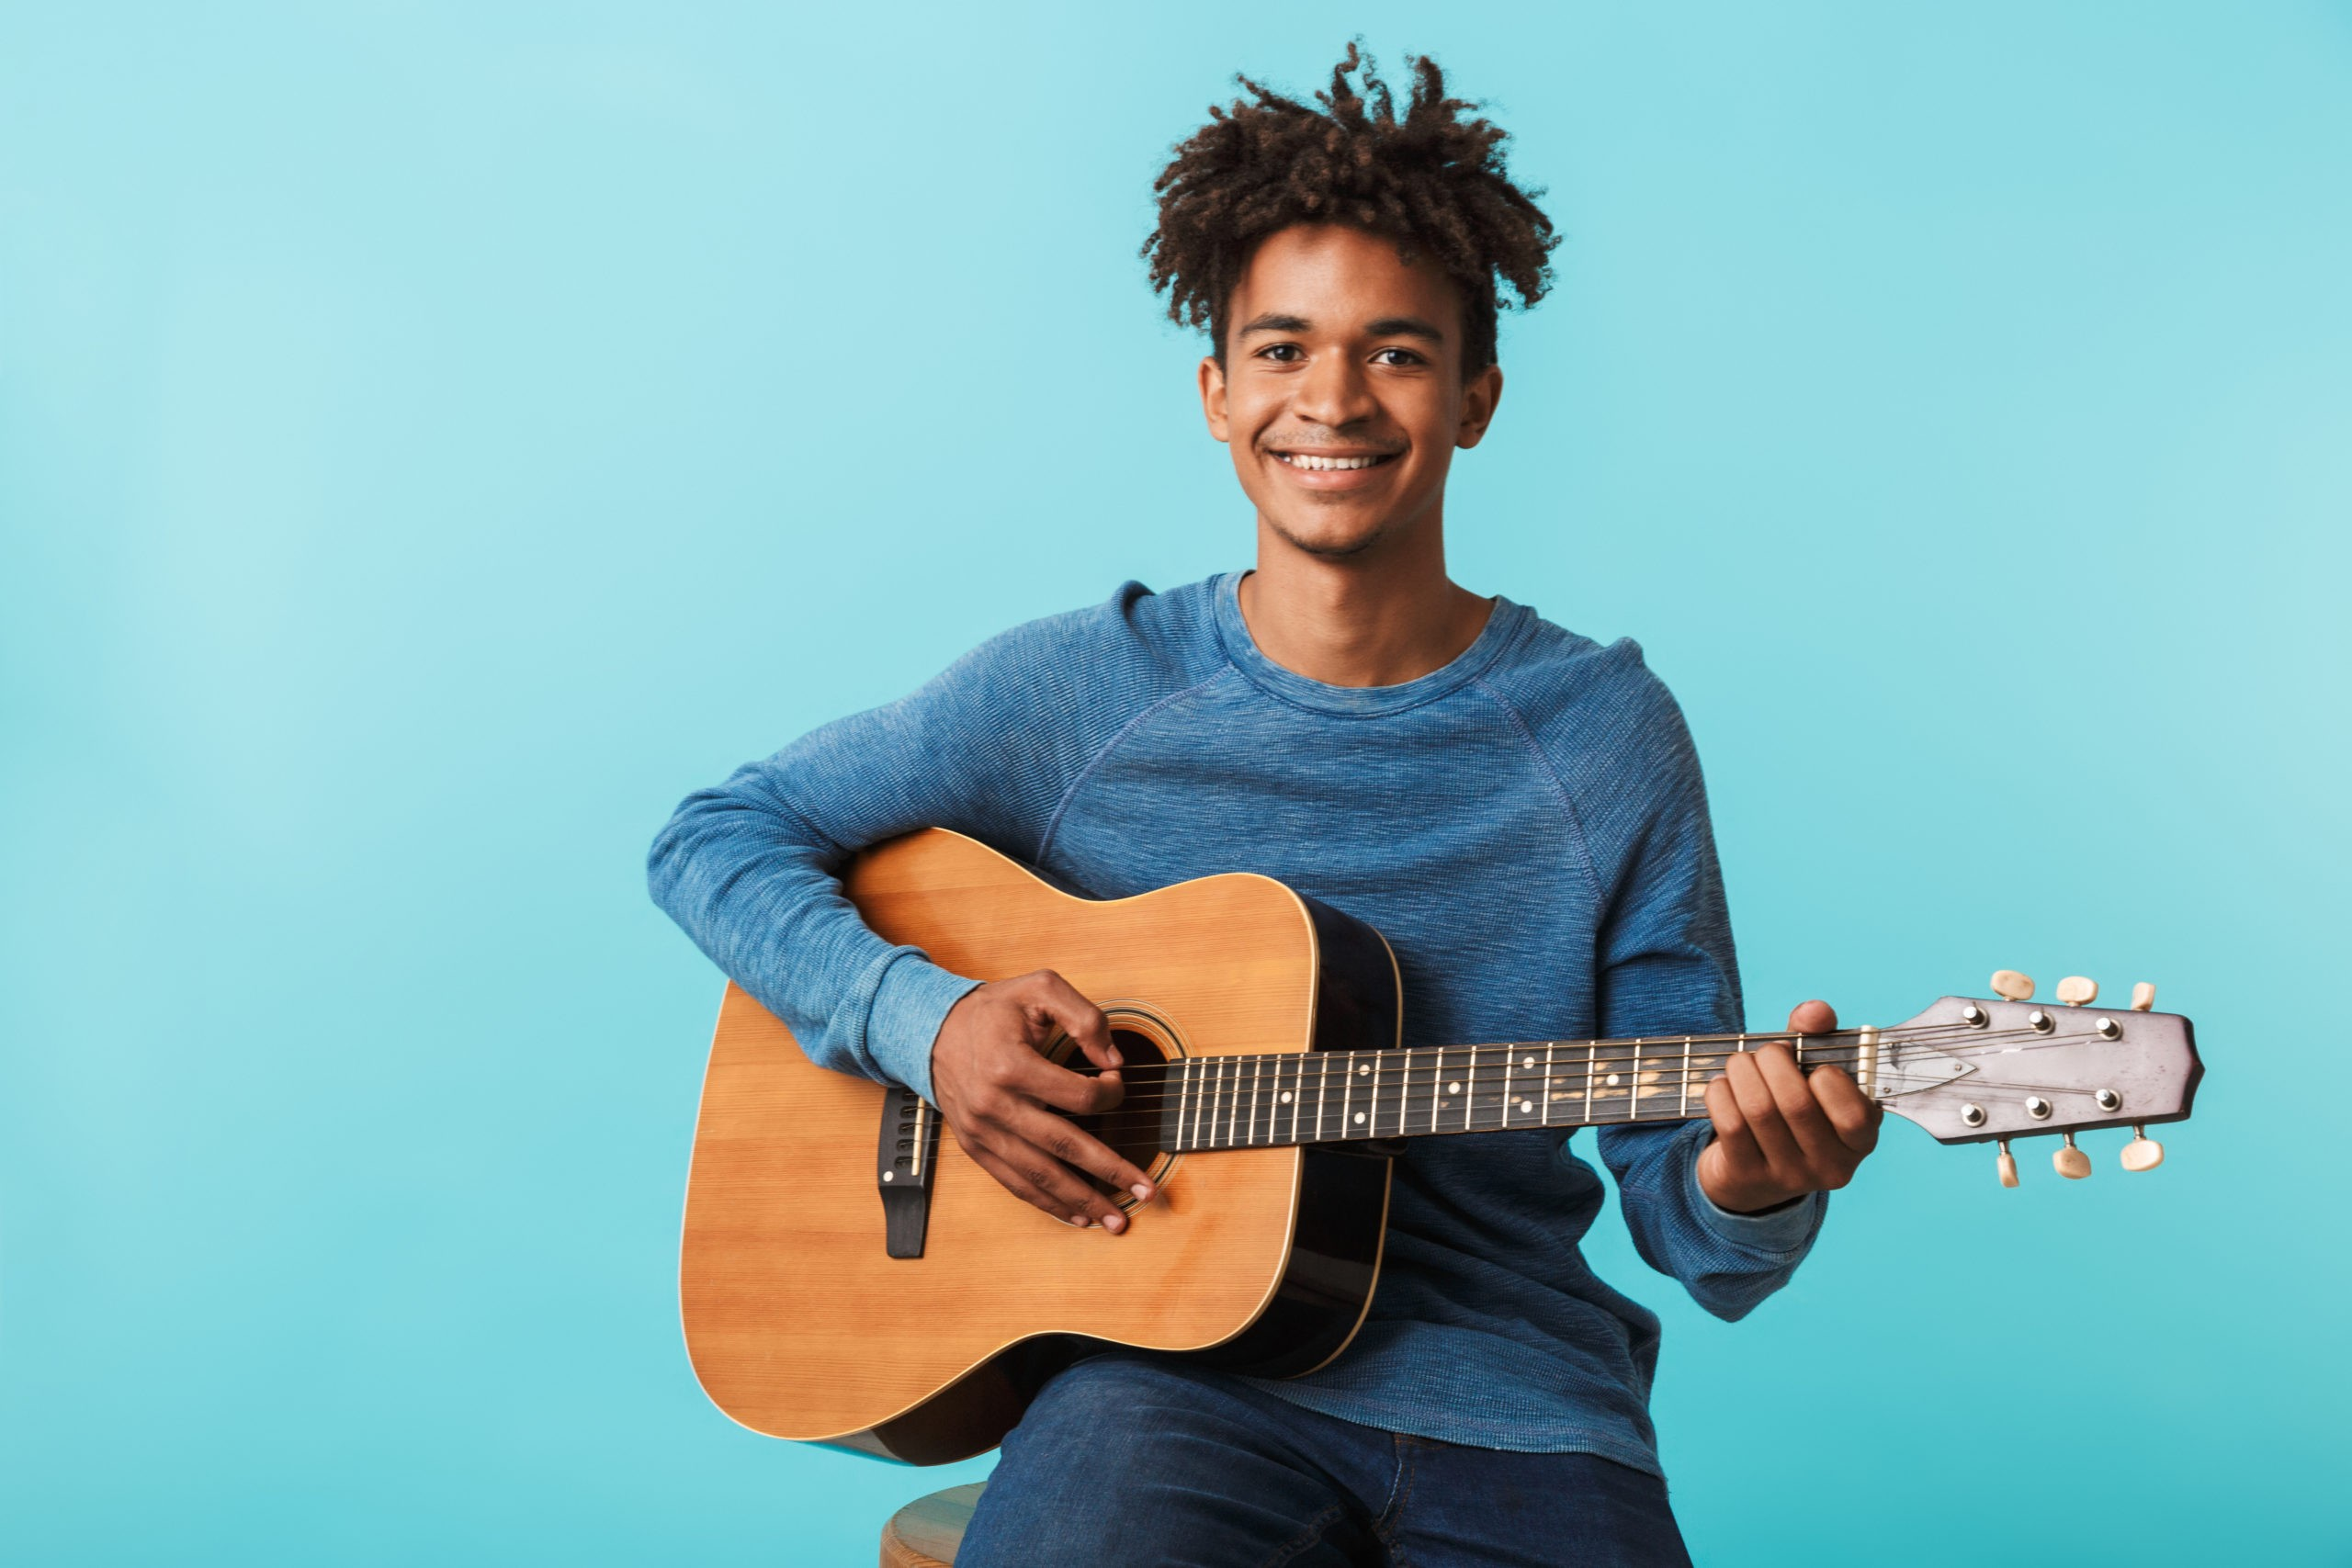 Boy sitting with a guitar in hand